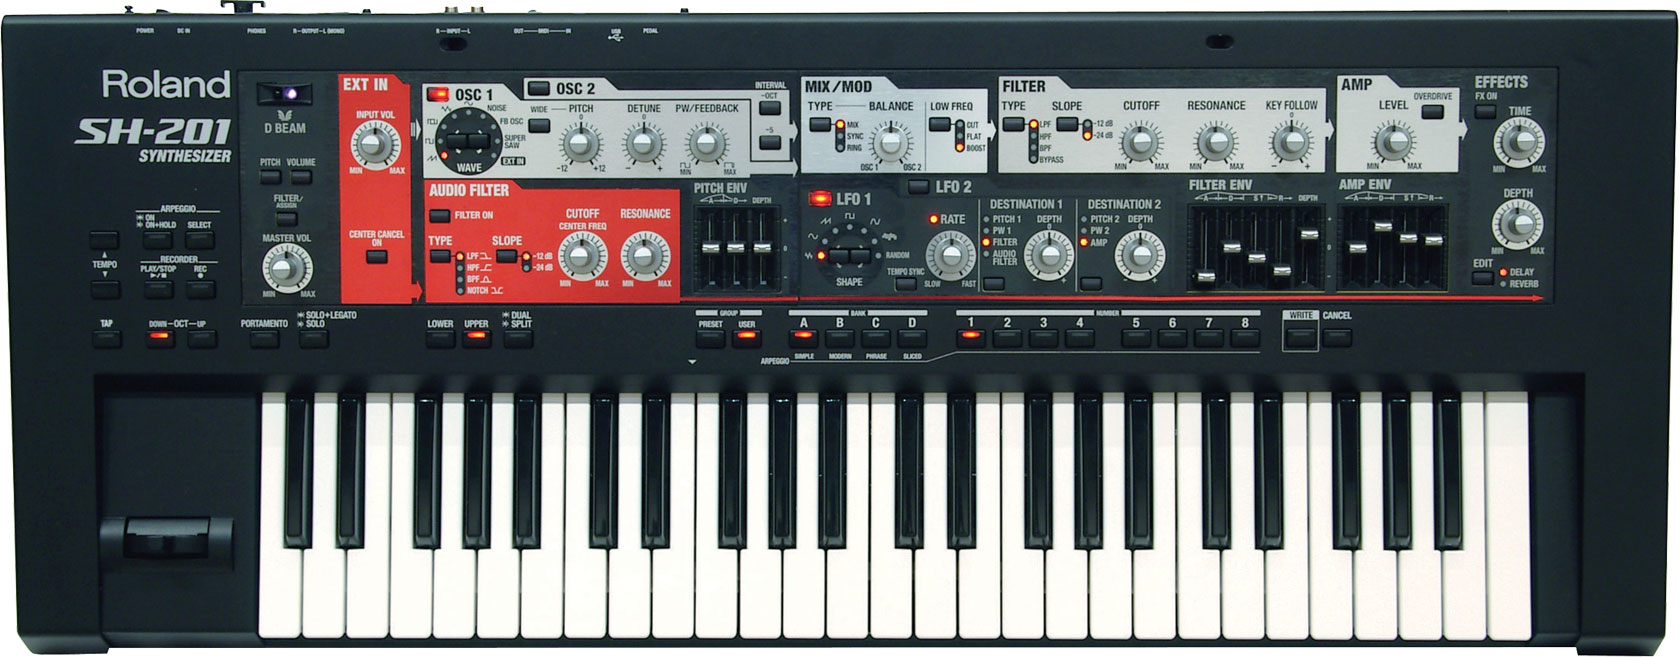 sh-201 Roland Synthesizer